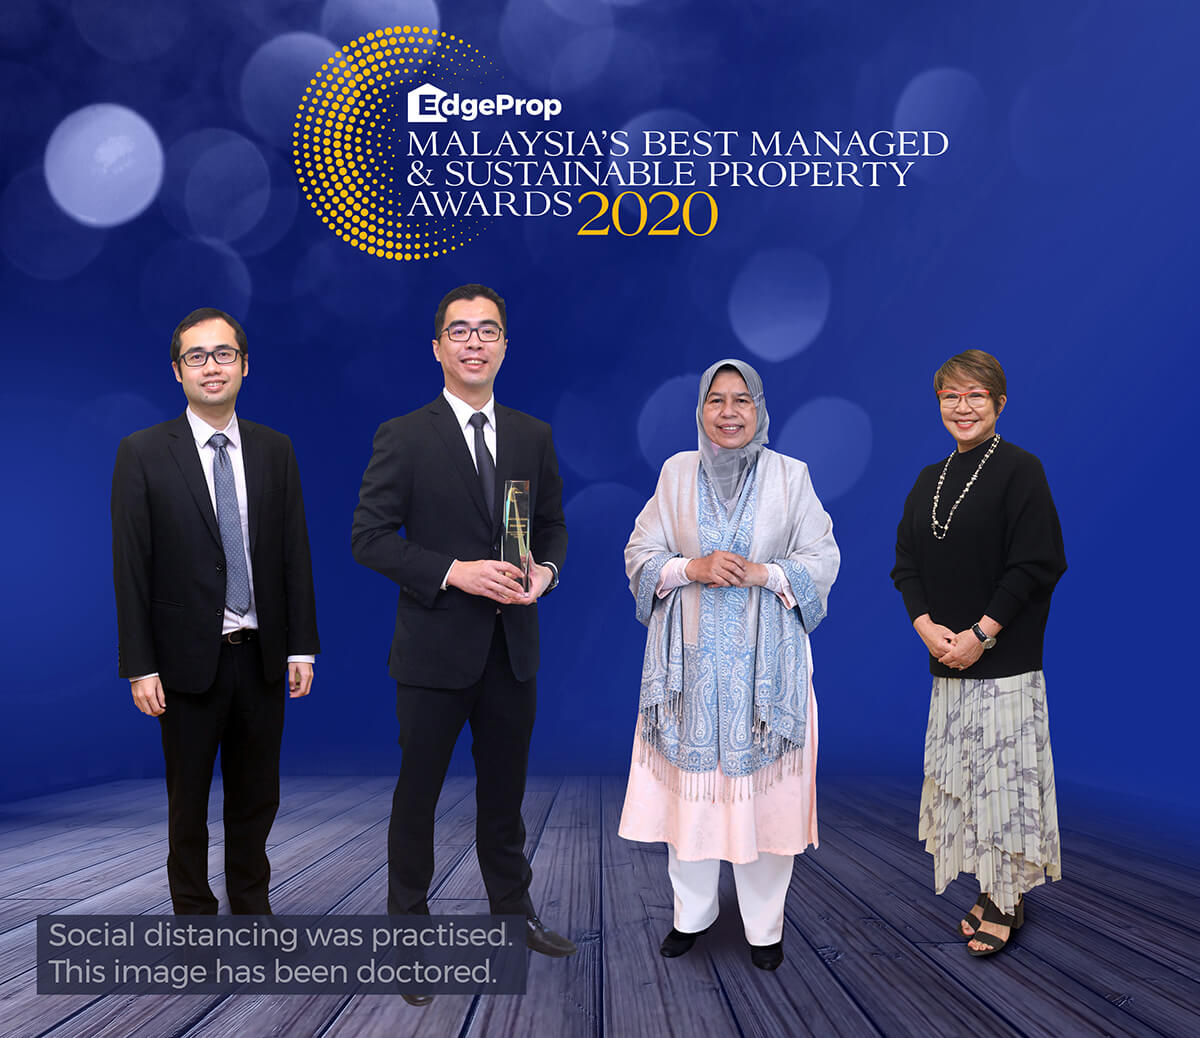 From left: EdgeProp Malaysia director of business and product development Alvin Ong, Gamuda Land Bhd COO Aw Sei Cheh, Housing and Local Government Minister Zuraida Kamaruddin and EdgeProp Malaysia editor-in- chief and managing director Au Foong Yee.